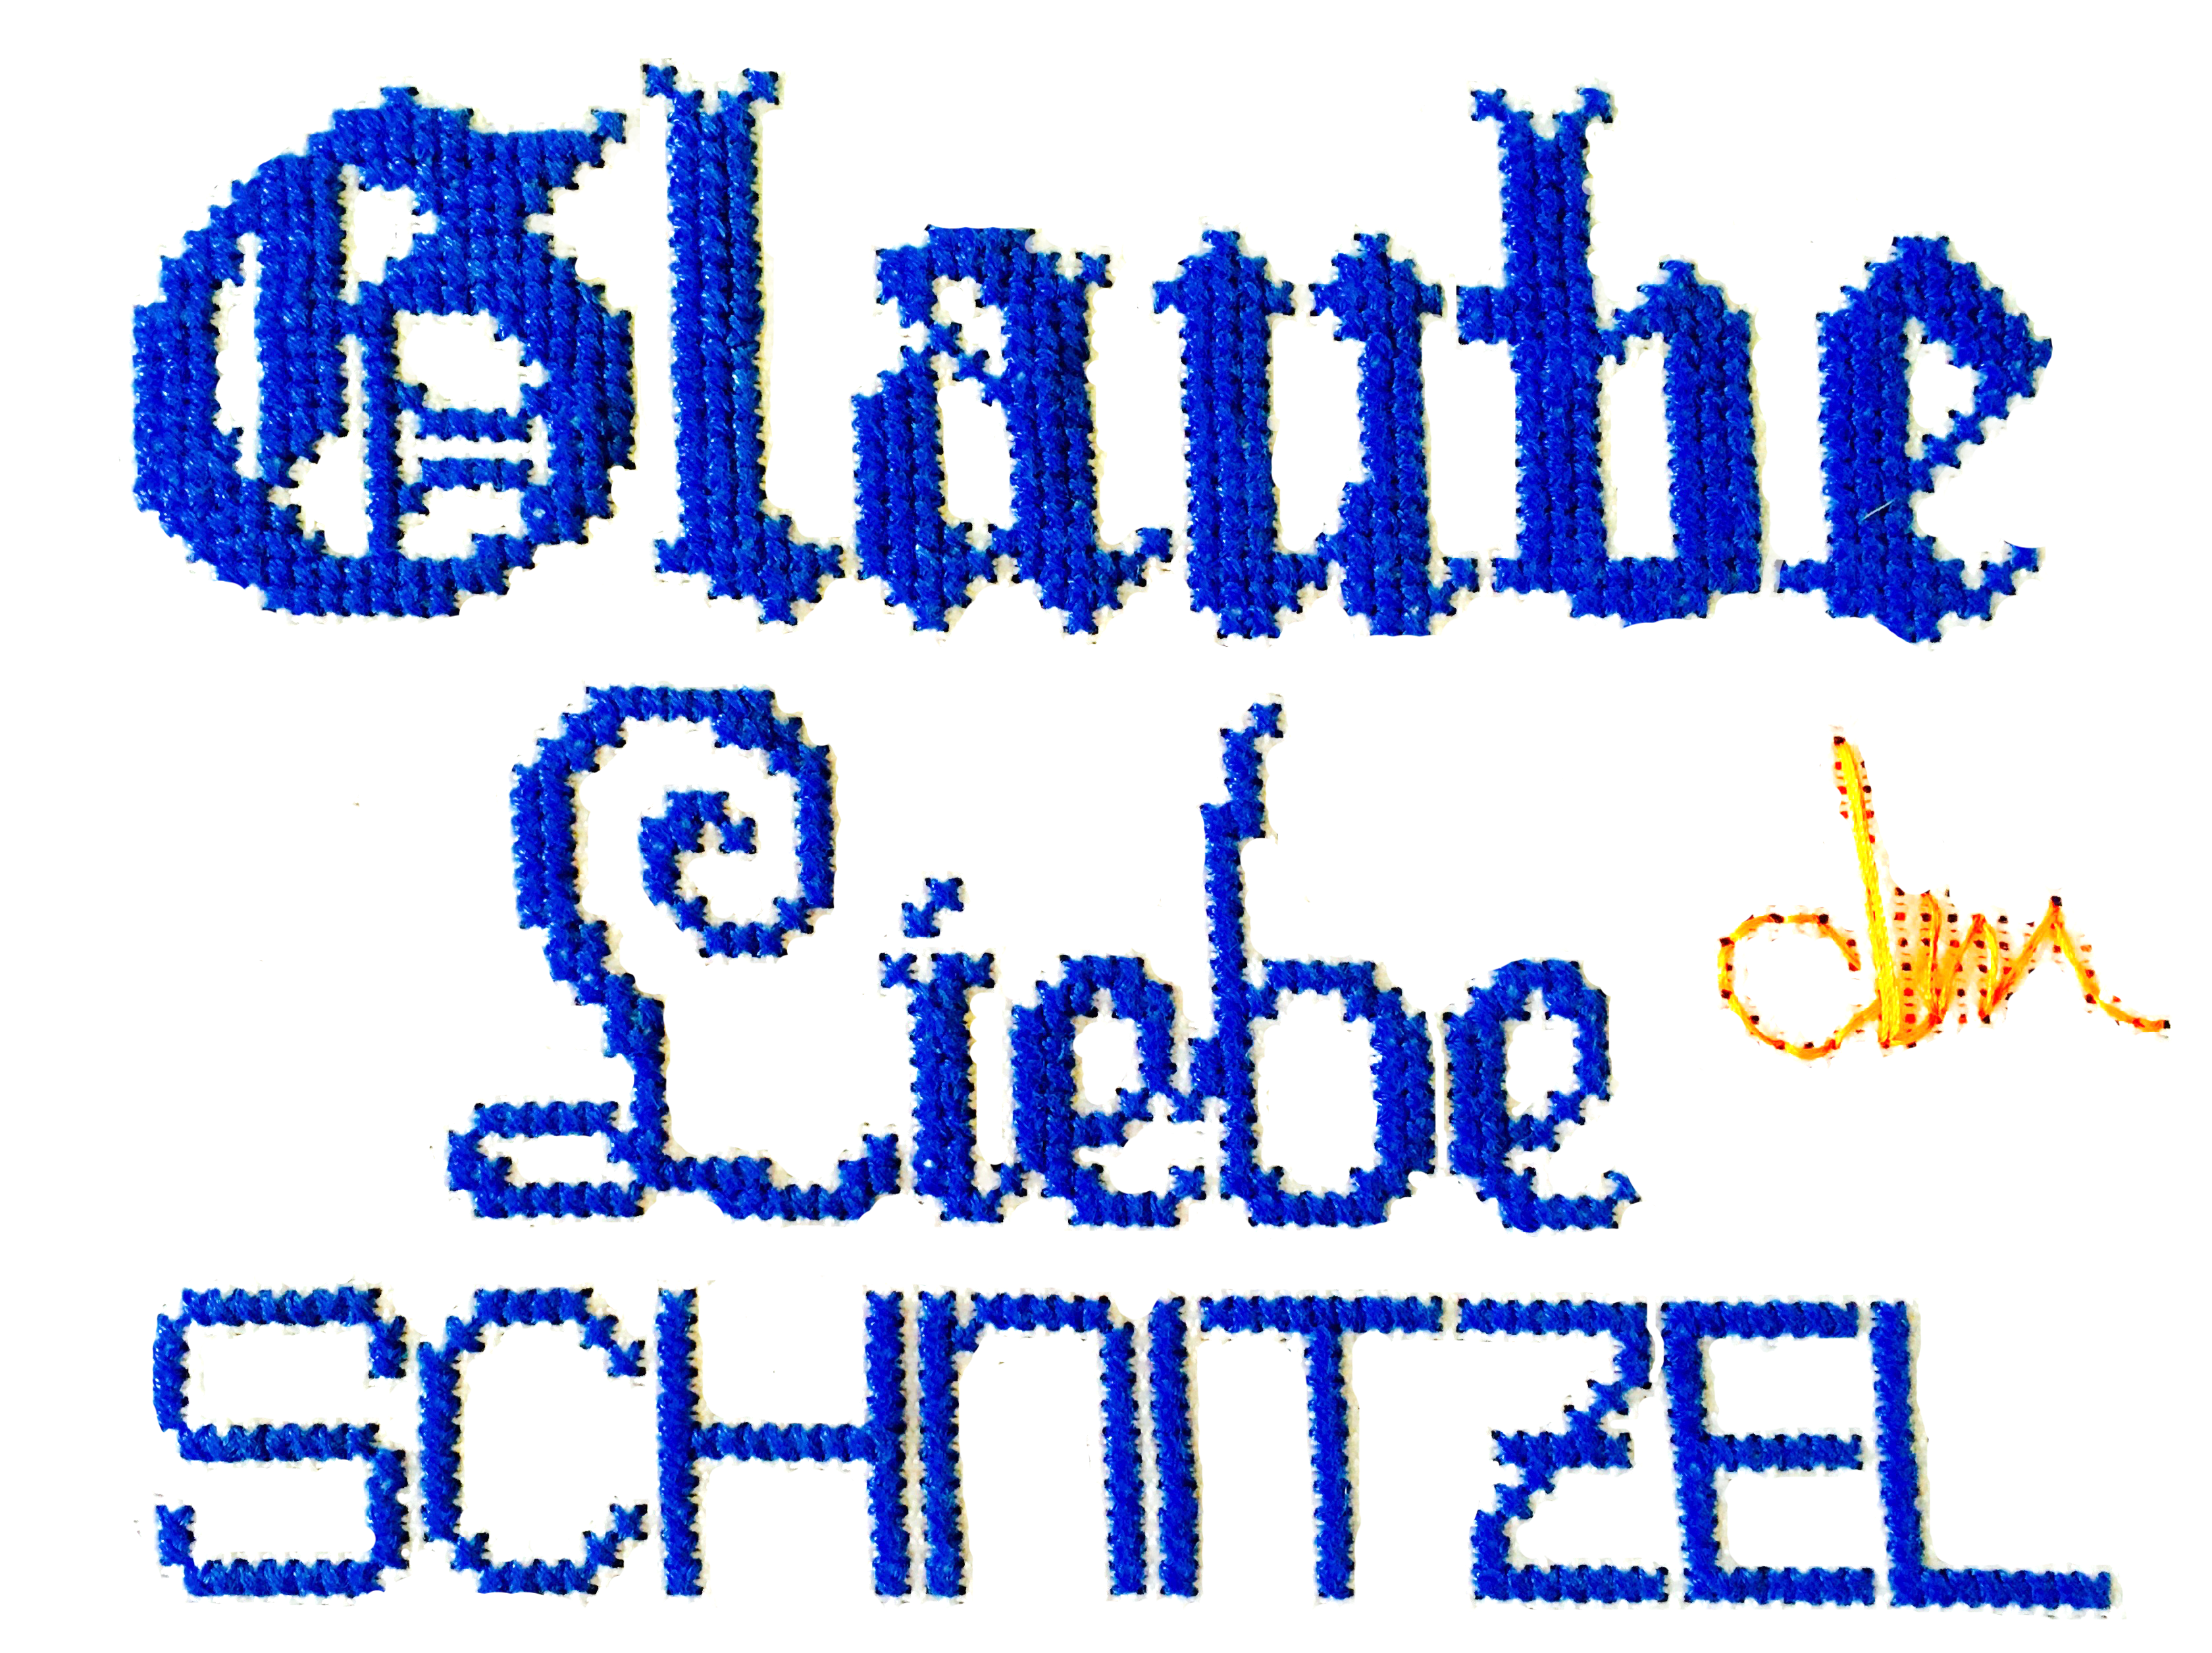 glaubeliebeschnitzel.ch